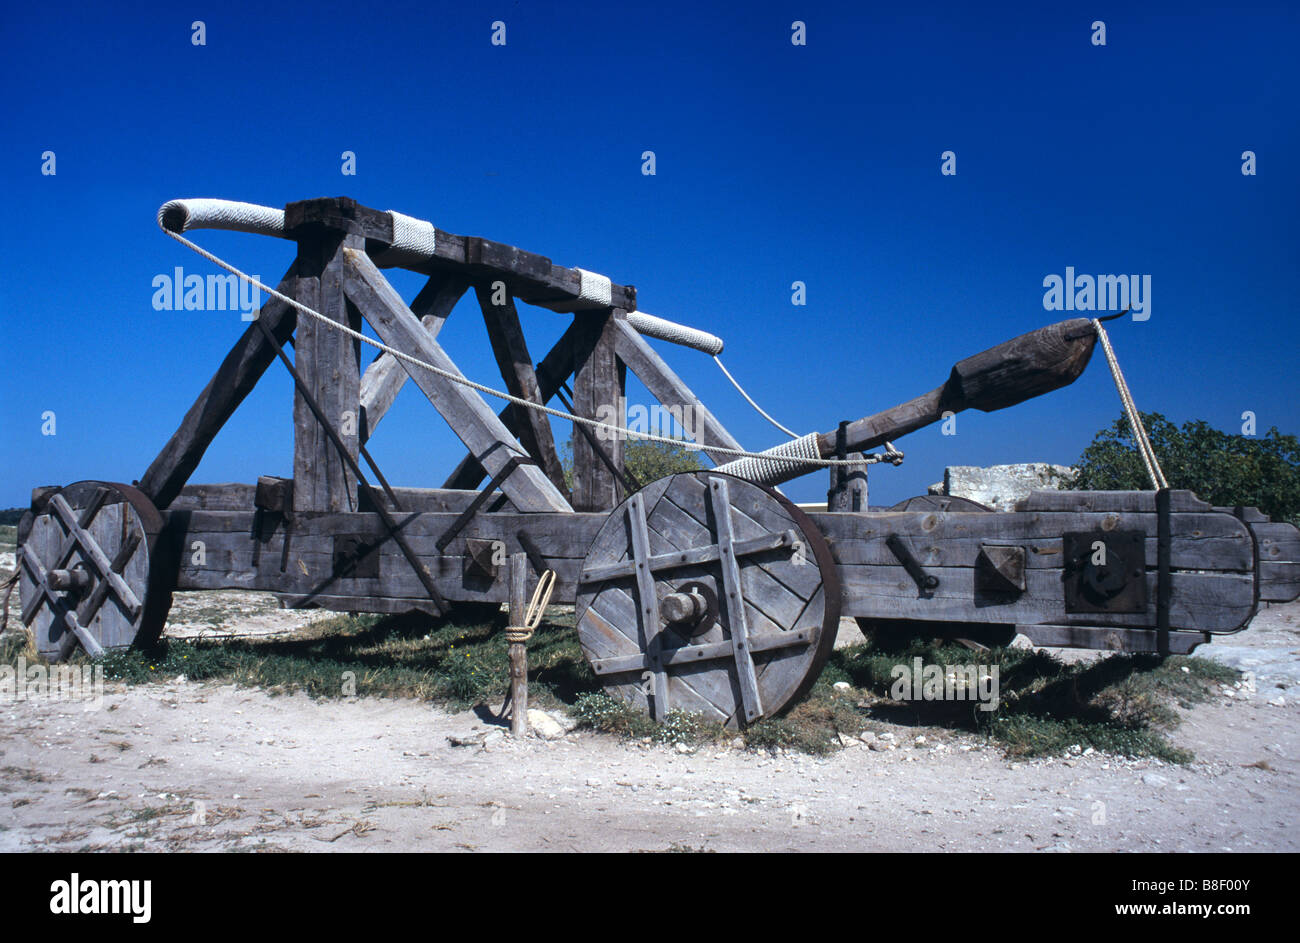 Reconstructed Medieval Sling or Siege Machine, used to Attack Medieval Castles, Les Baux, Provence, France - Stock Image